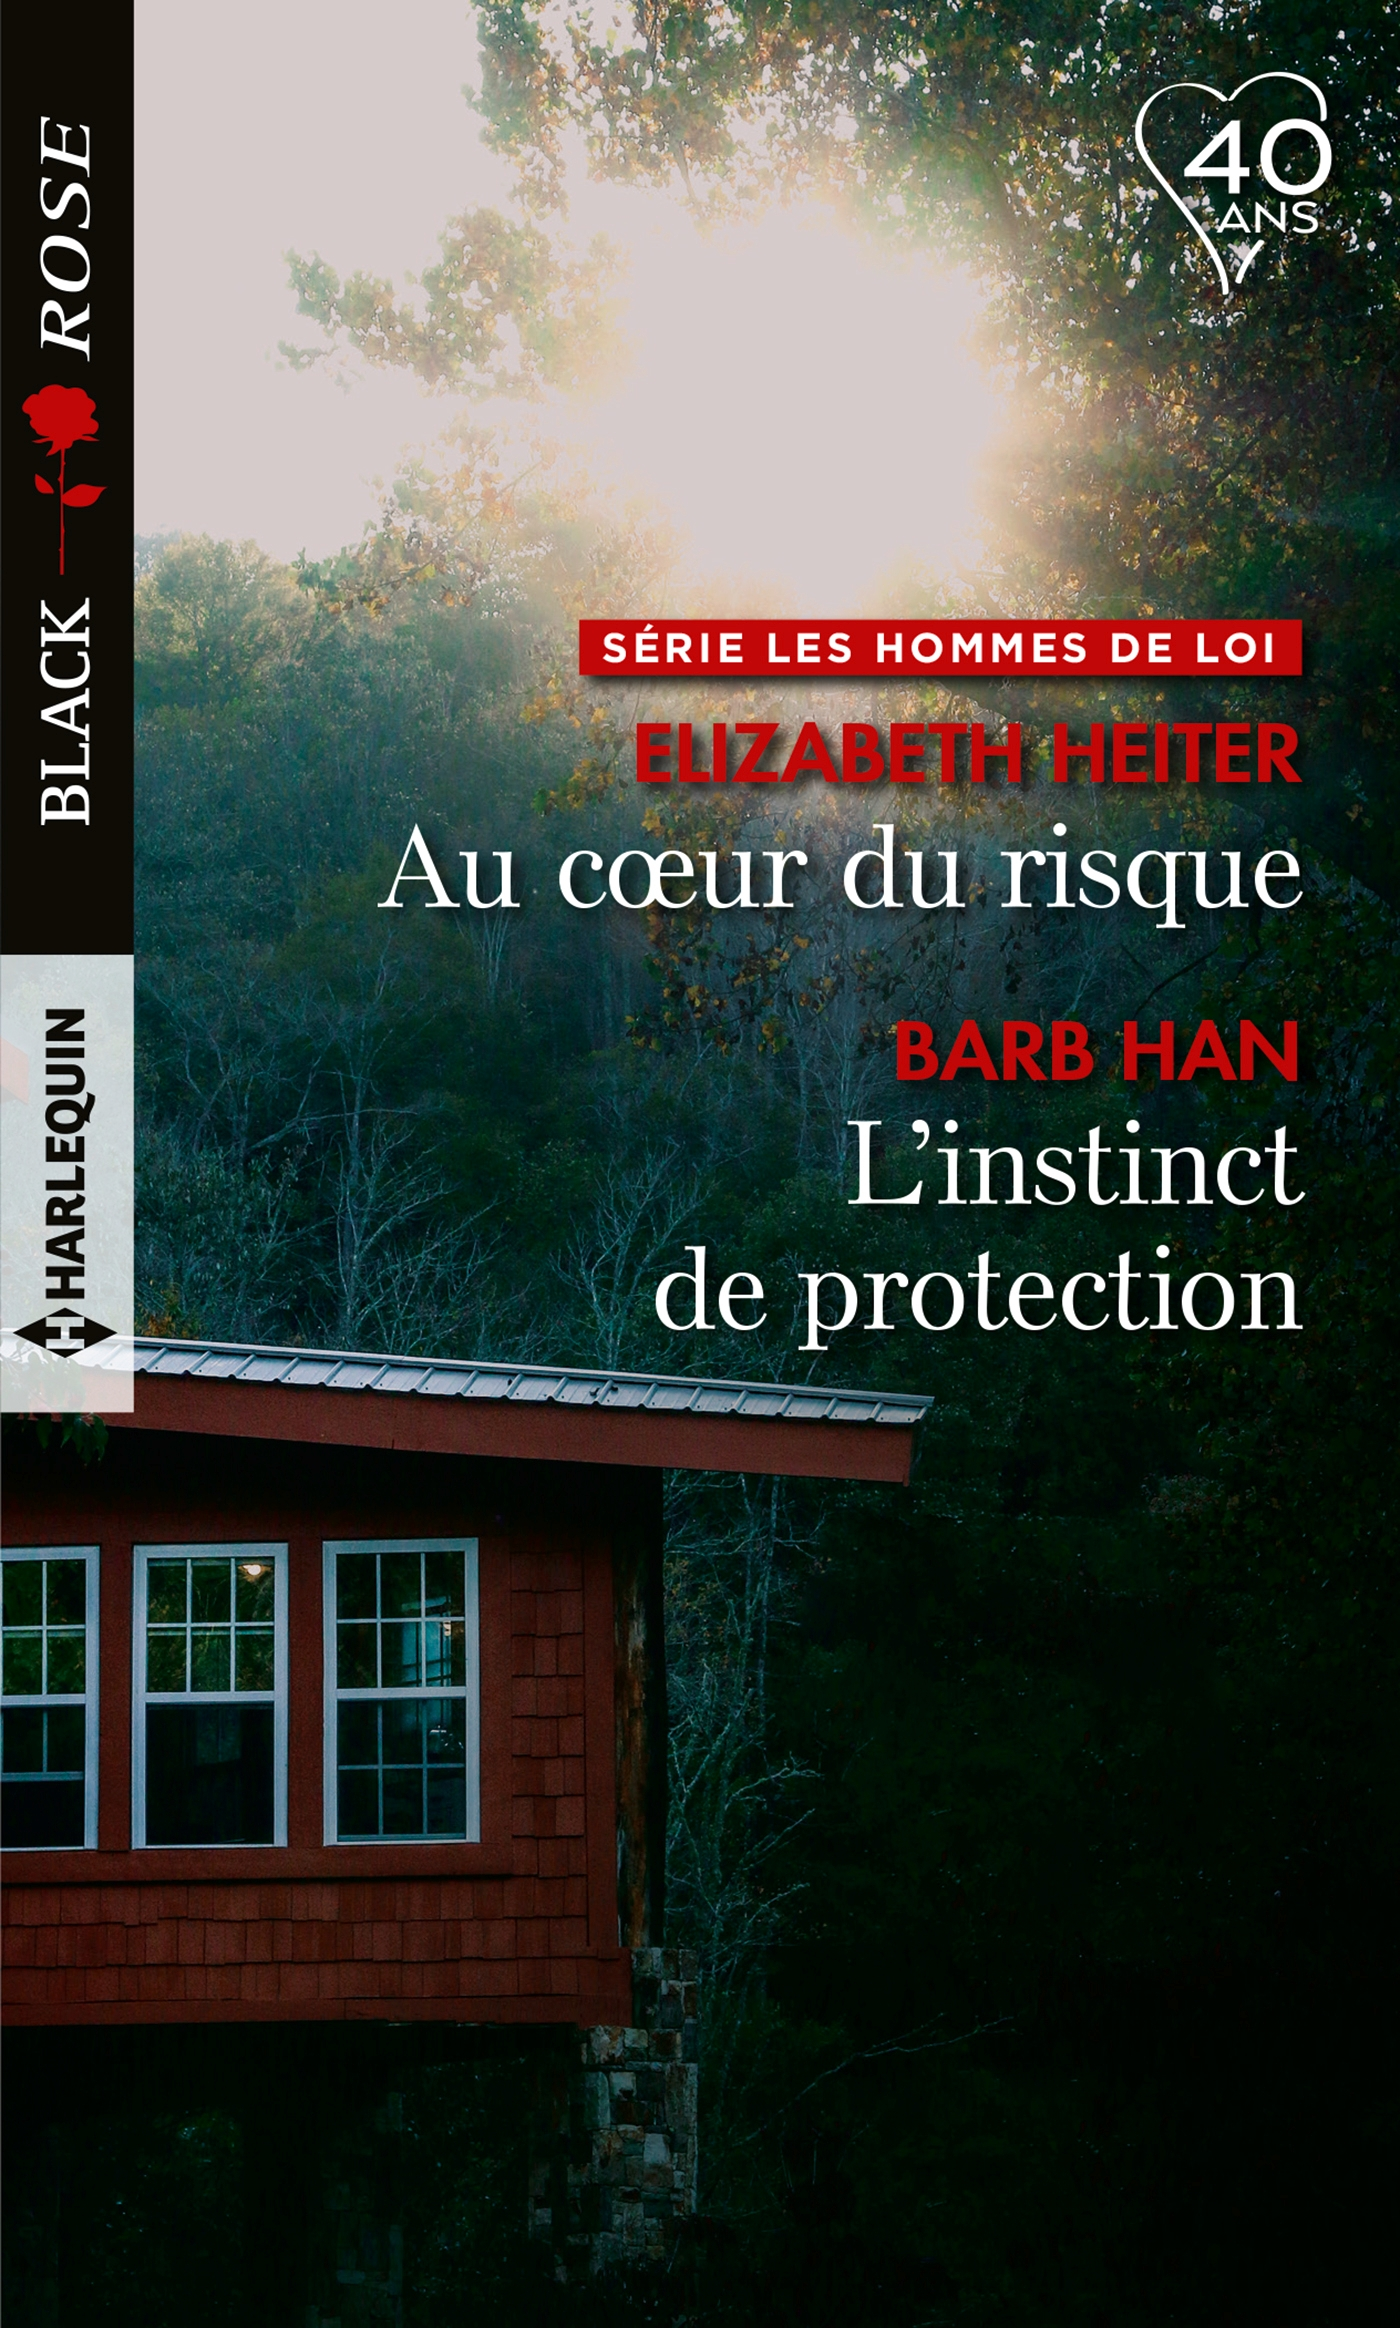 Au coeur du risque - L'instinct de protection